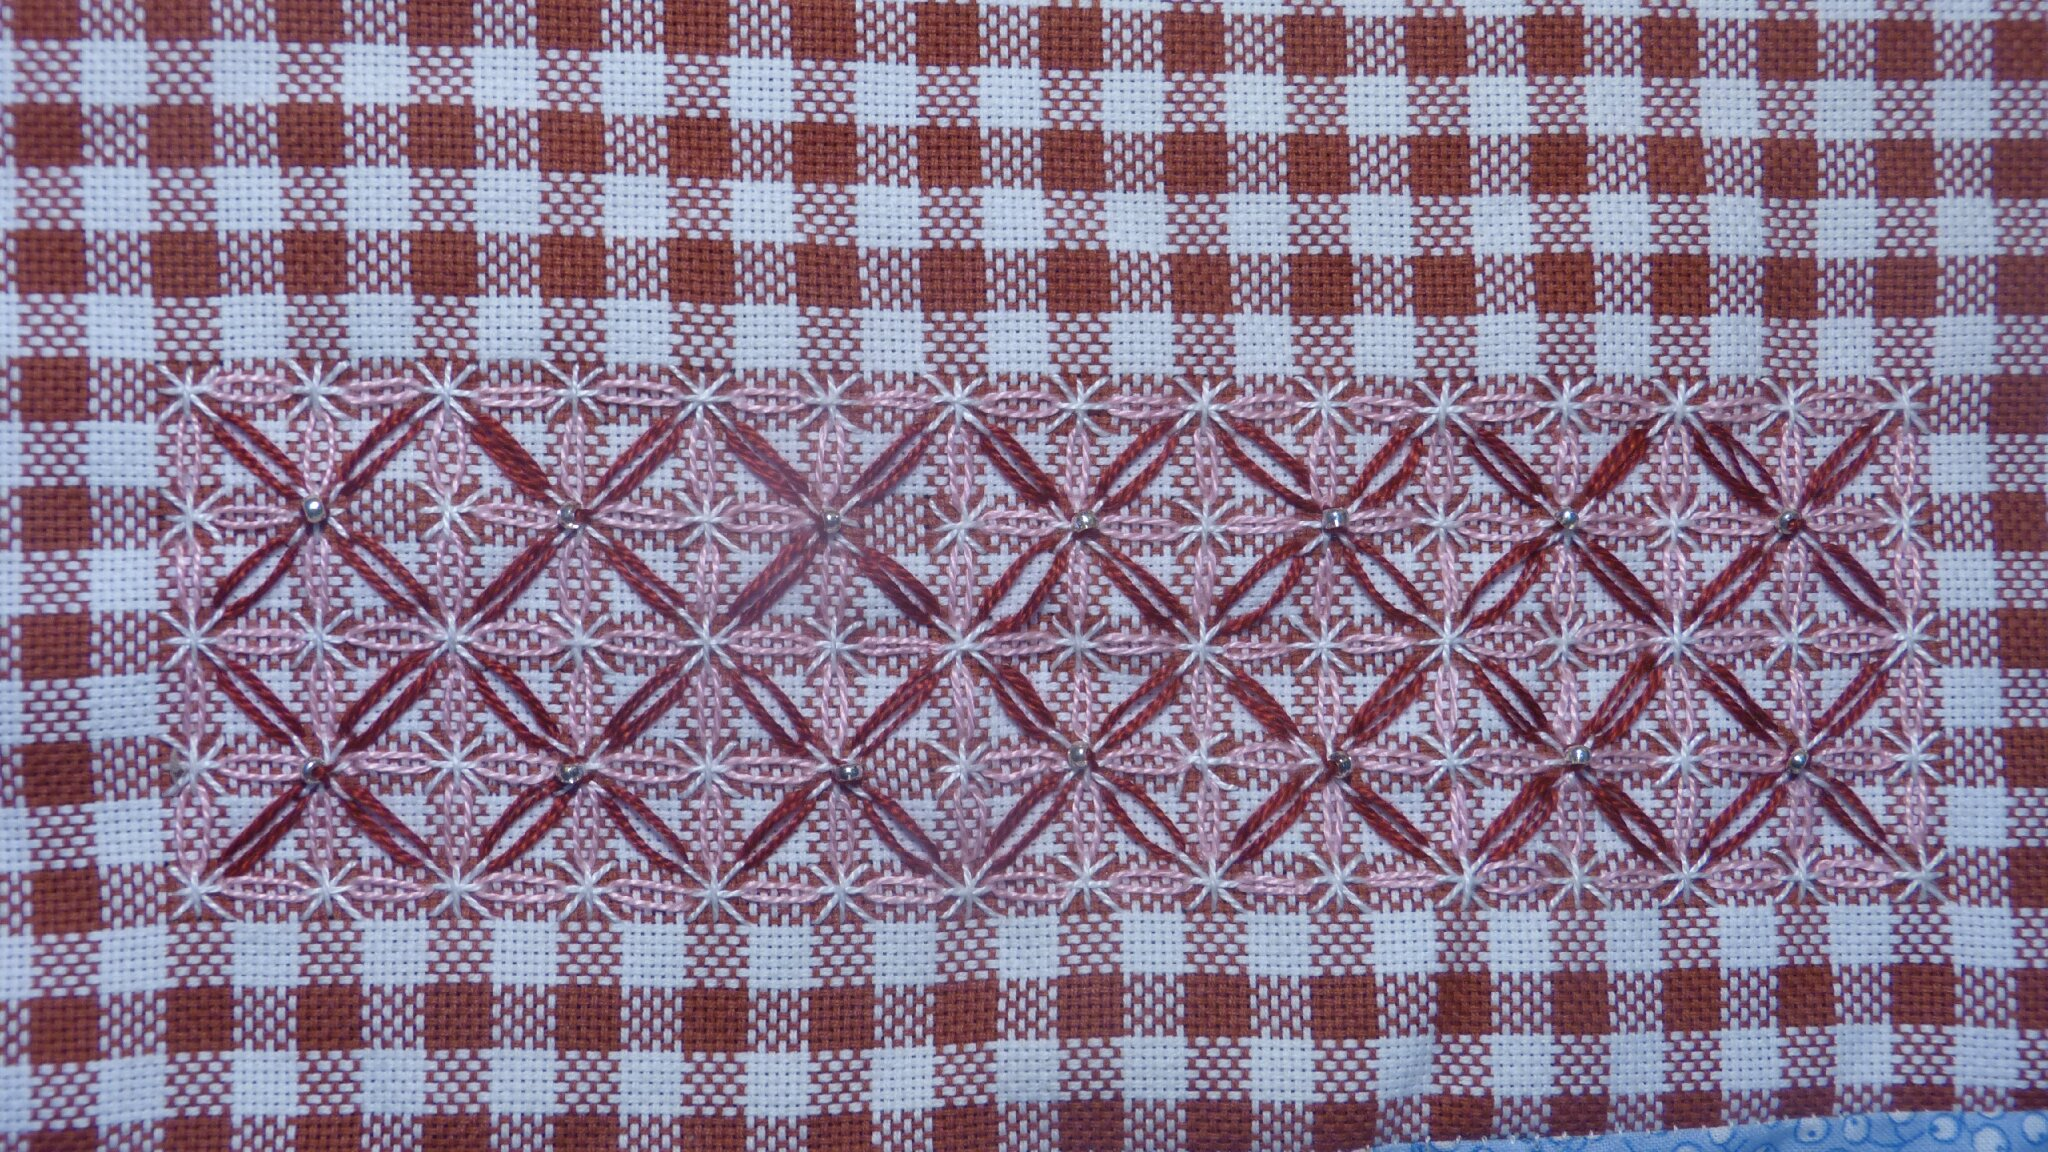 NOUVEAU HOBBY BRODERIE SUISSE